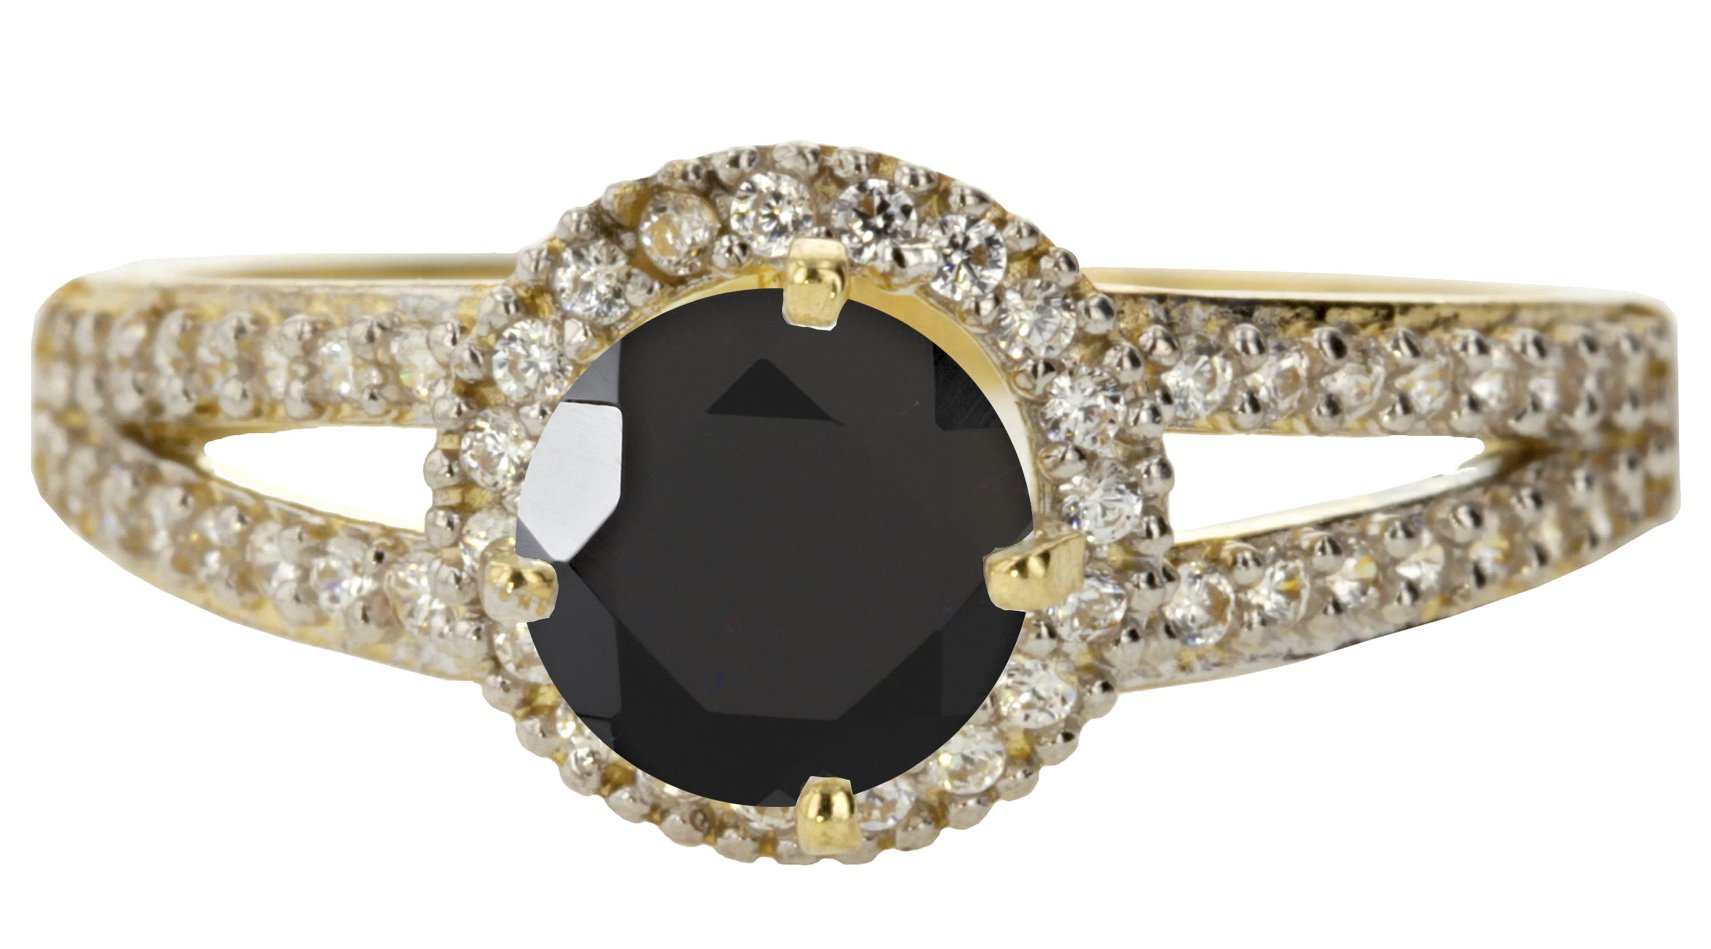 10k Yellow Gold Faceted Natural Genuine Black Onyx Round Solitaire Halo Vintage Engagement Band Ring Size 8.5